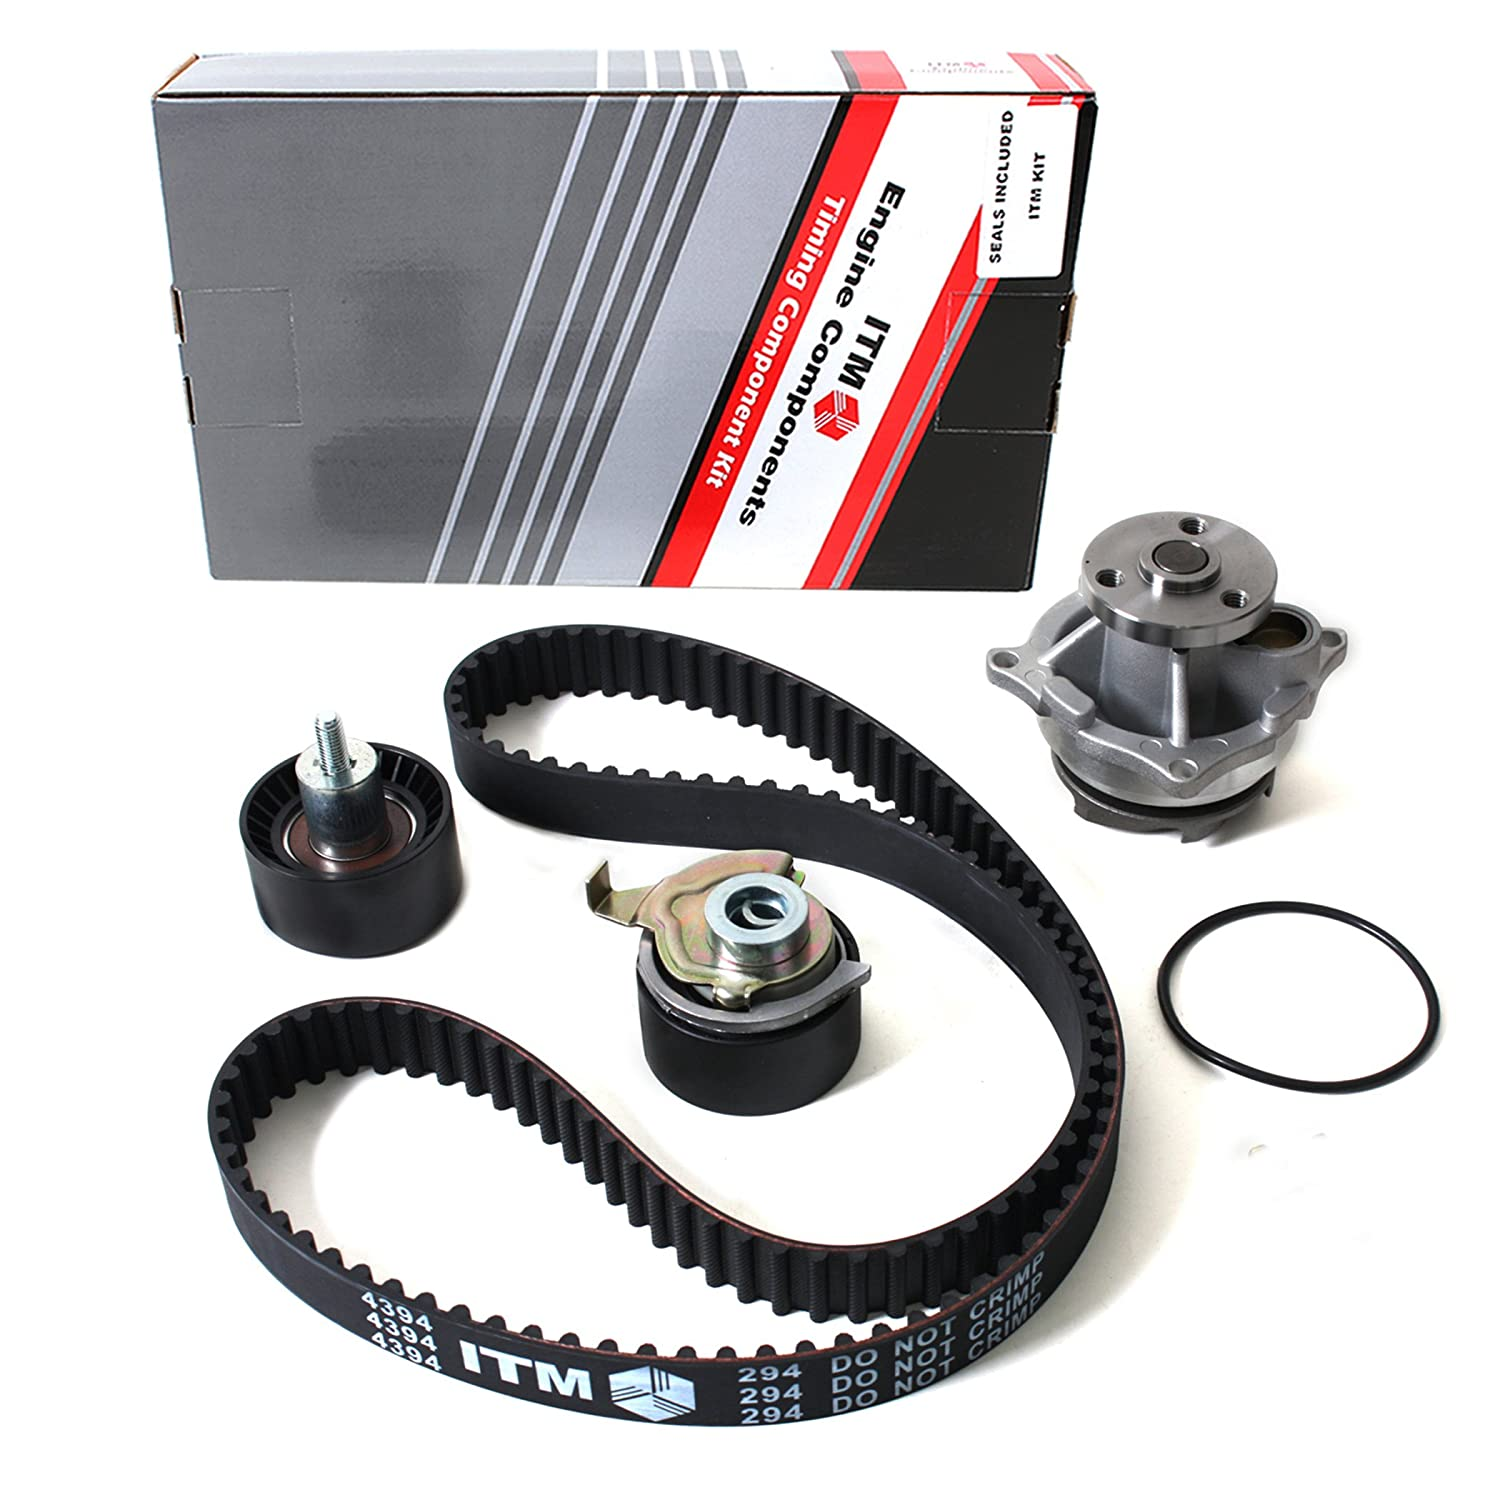 New Itm294bwp 129 Teeth Timing Belt Kit Water Pump 2002 Ford Focus Timming Engine Mechanical Problem Set For 01 04 Mazda 20l Dohc Zetec Vin Code B 3 5 Sohc Will Not